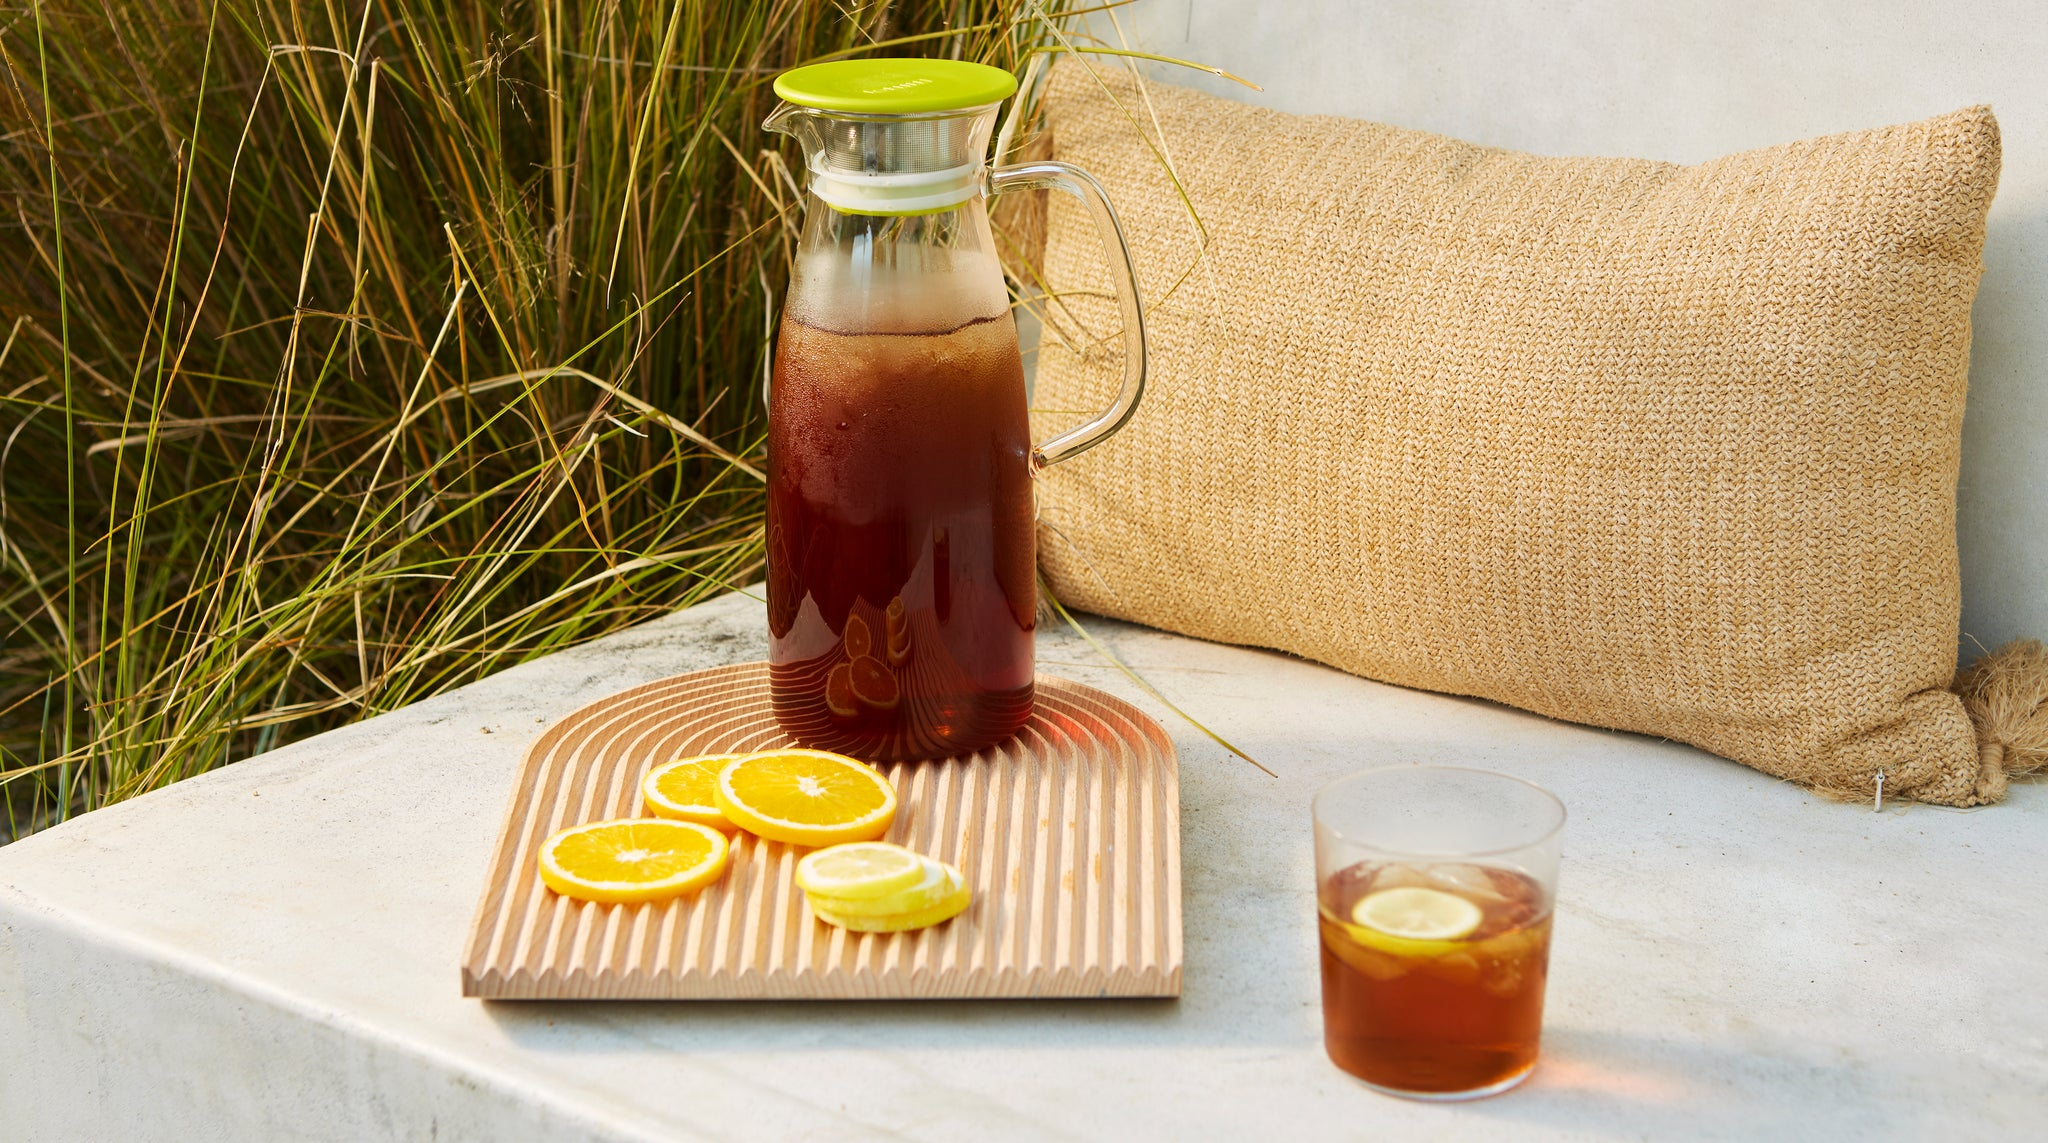 Iced Tea Jugs